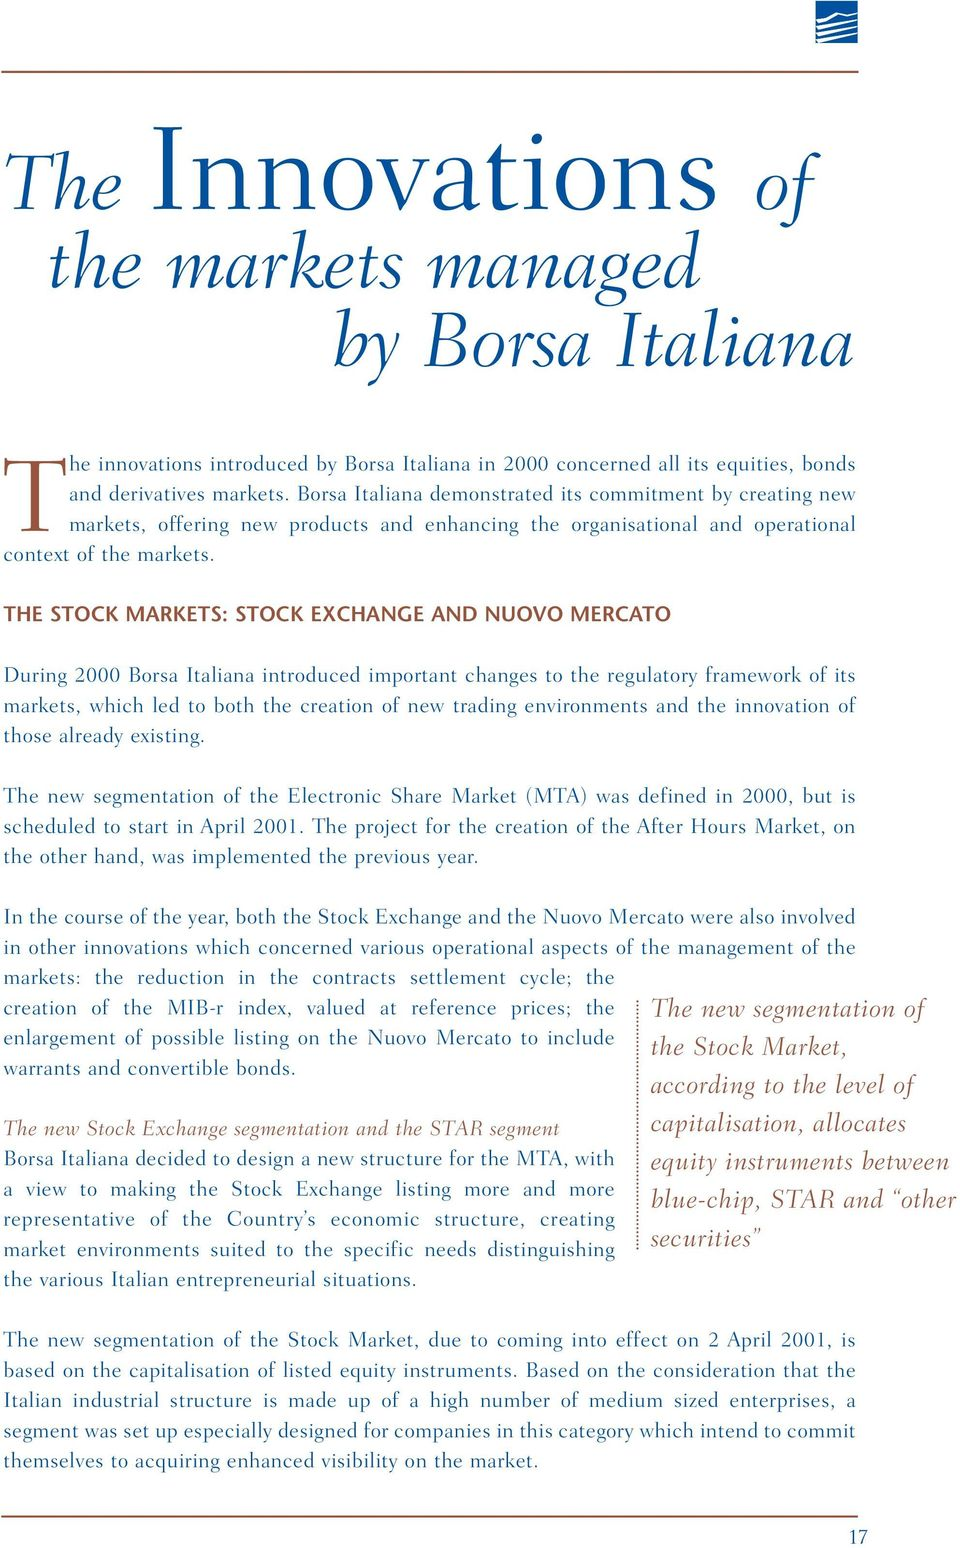 THE STOCK MARKETS: STOCK EXCHANGE AND NUOVO MERCATO During 2000 Borsa Italiana introduced important changes to the regulatory framework of its markets, which led to both the creation of new trading